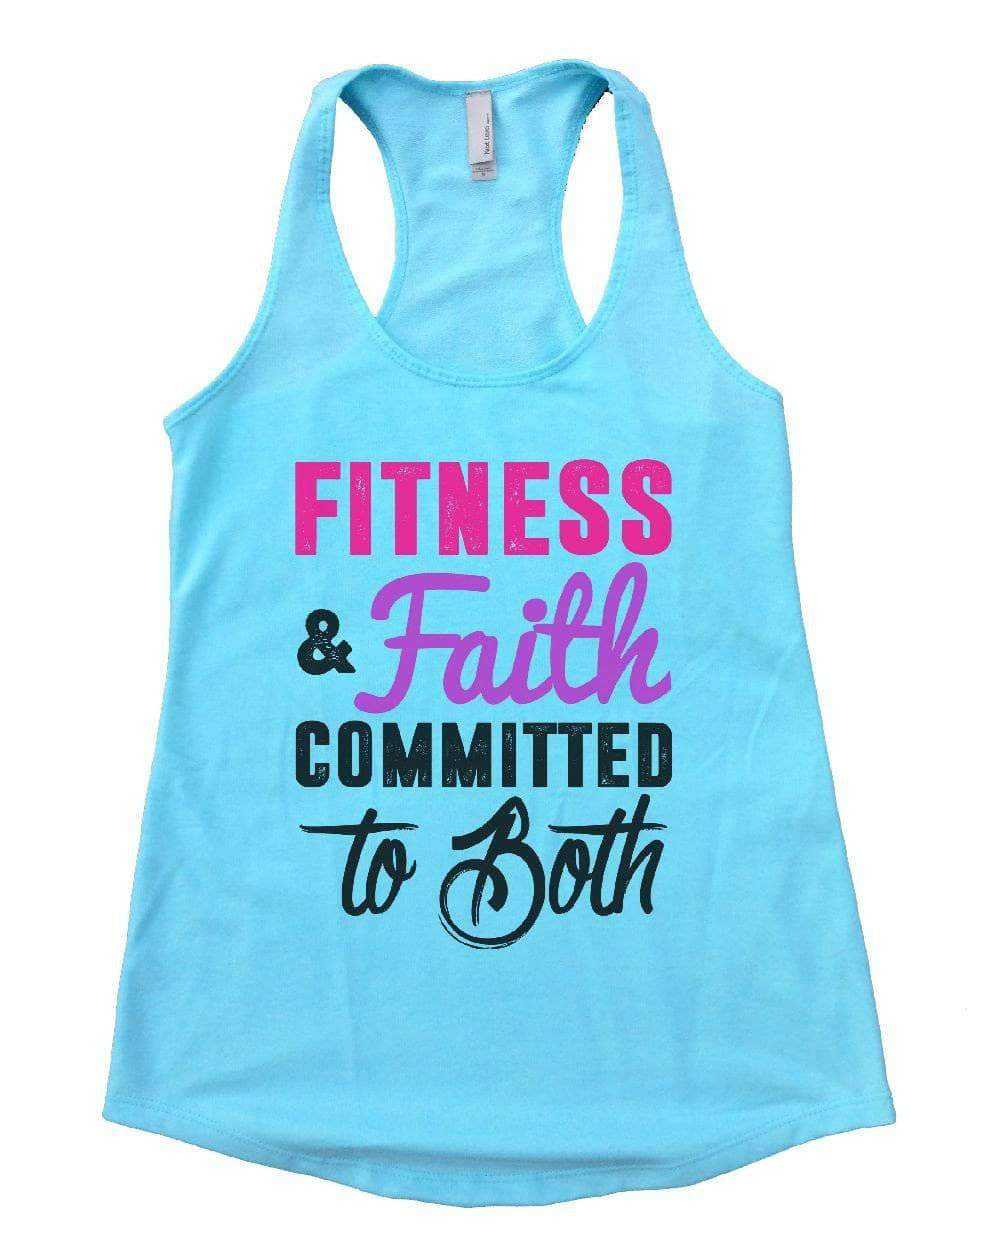 FITNESS & Faith COMMITTED To Both Womens Workout Tank Top Small Womens Tank Tops Cancun Blue